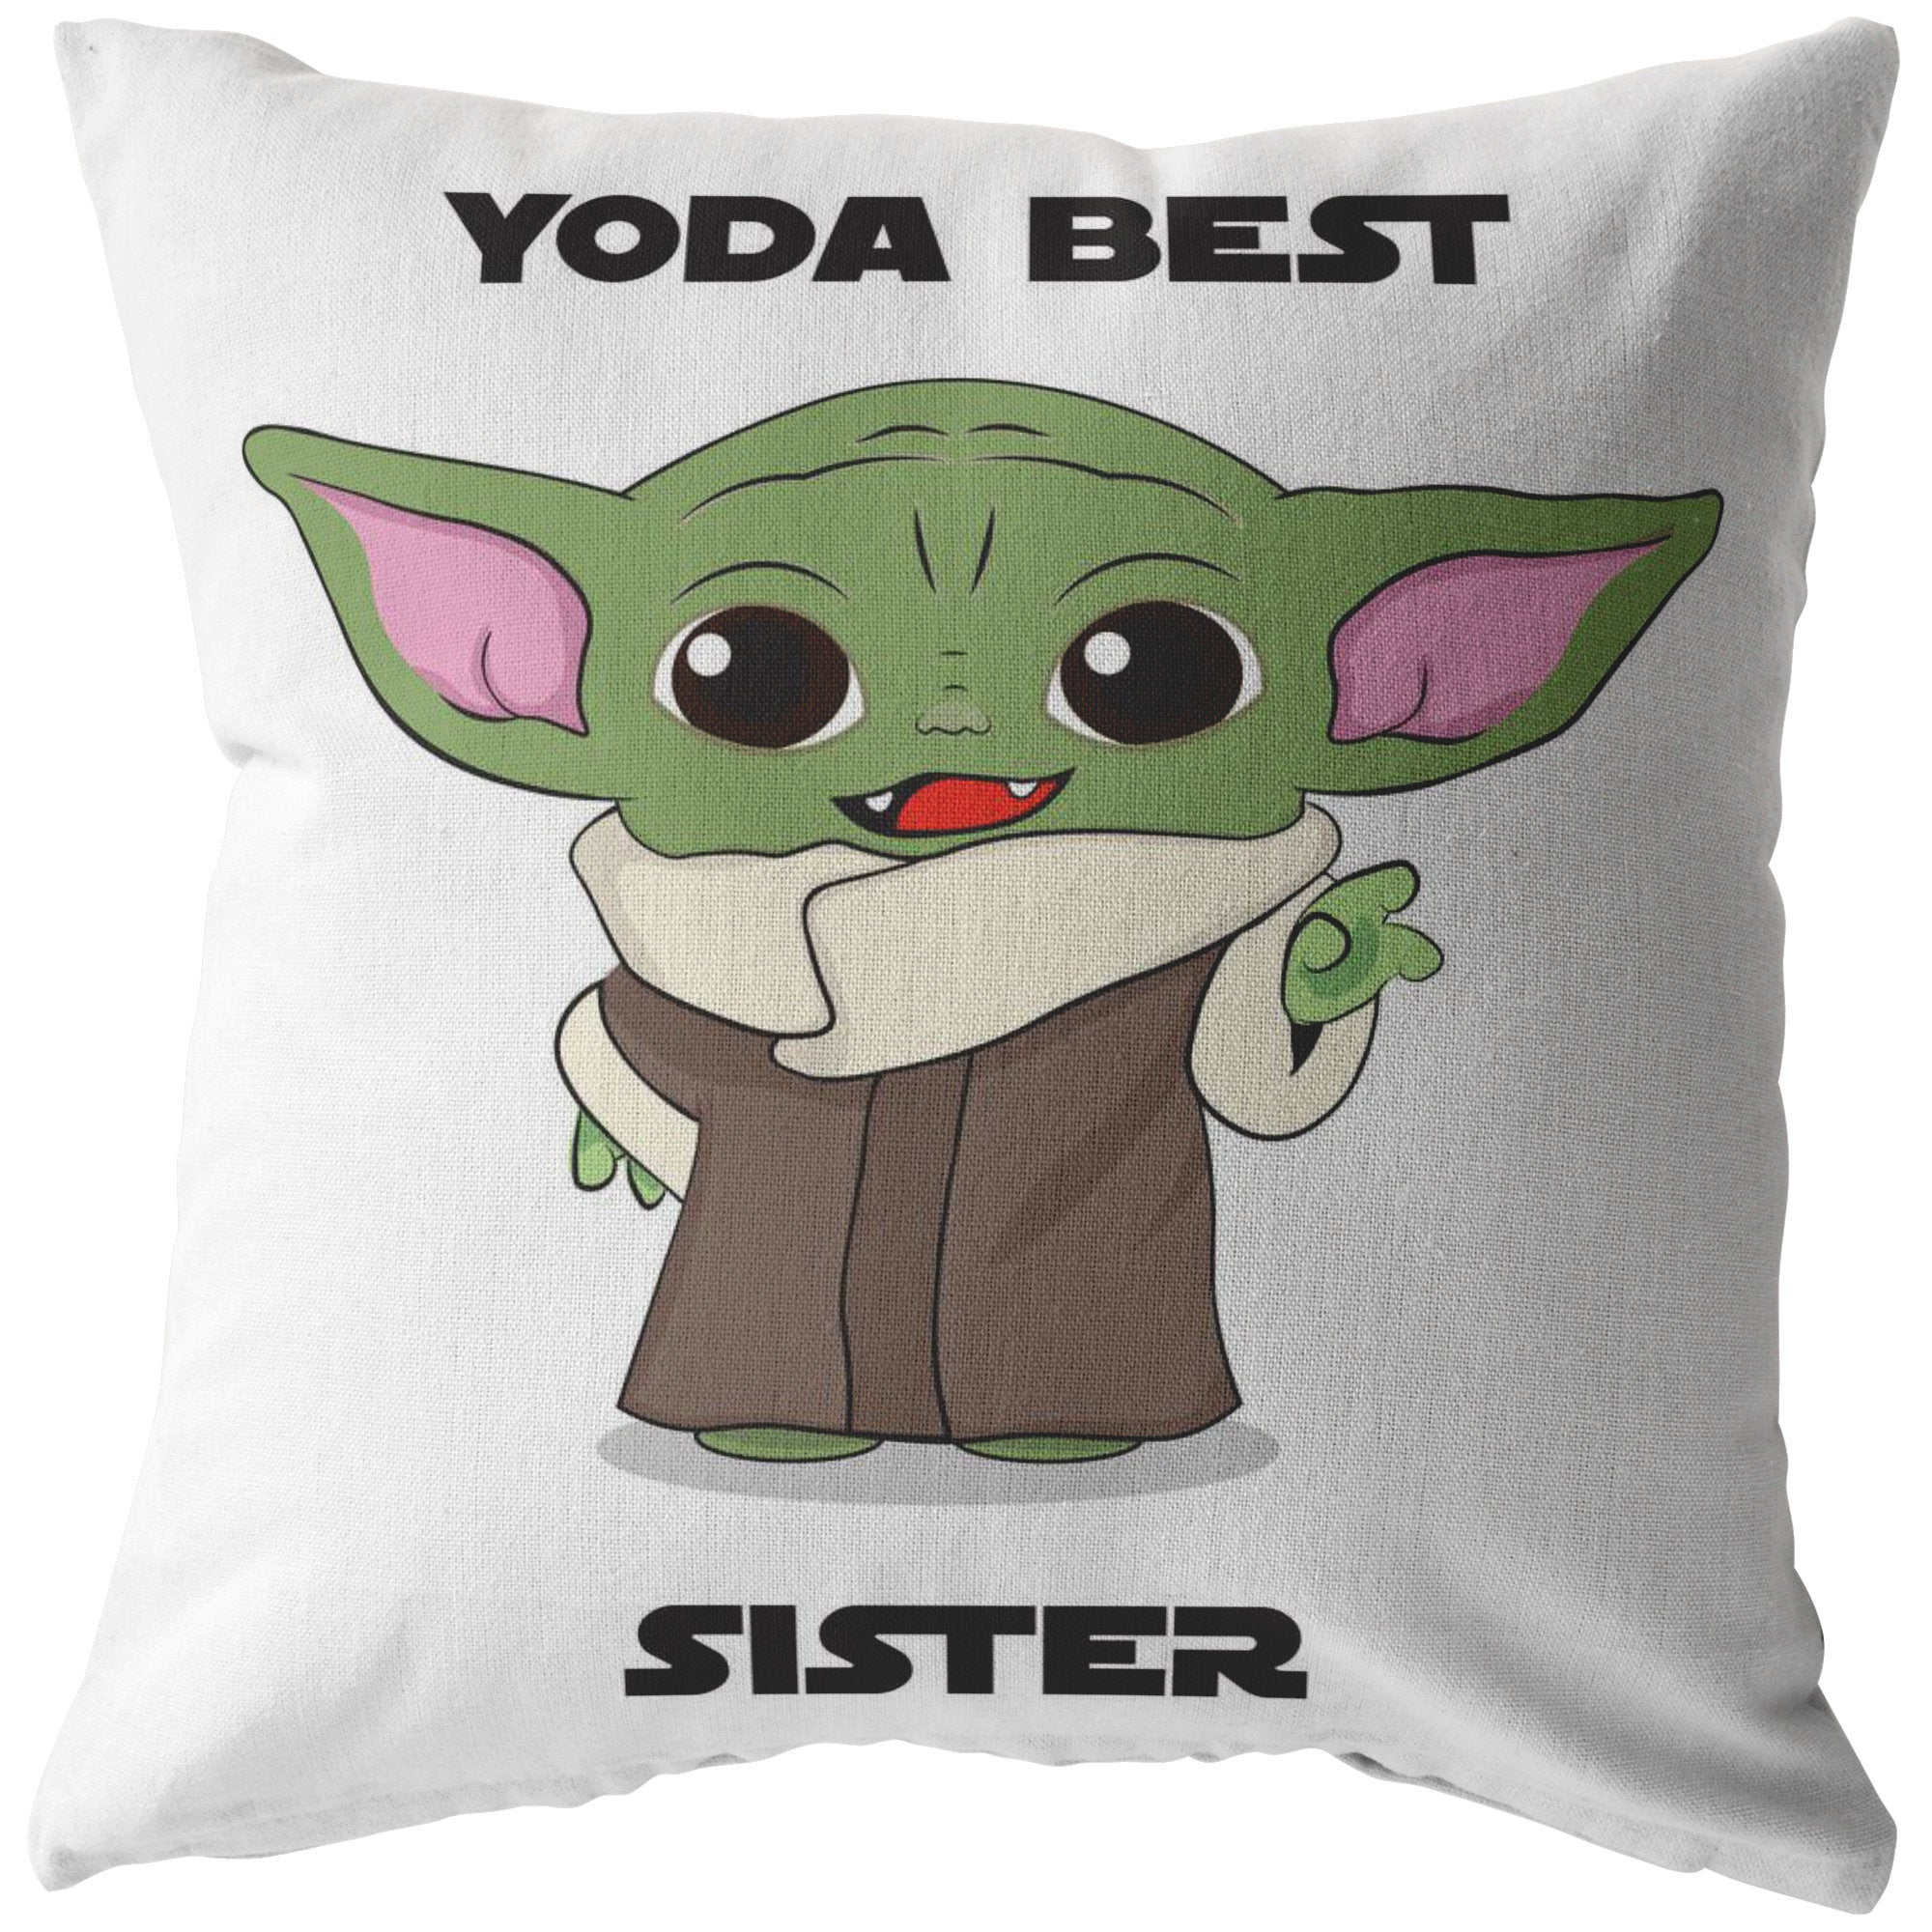 Yoda Best Sister Pillow Case Cushion Cover